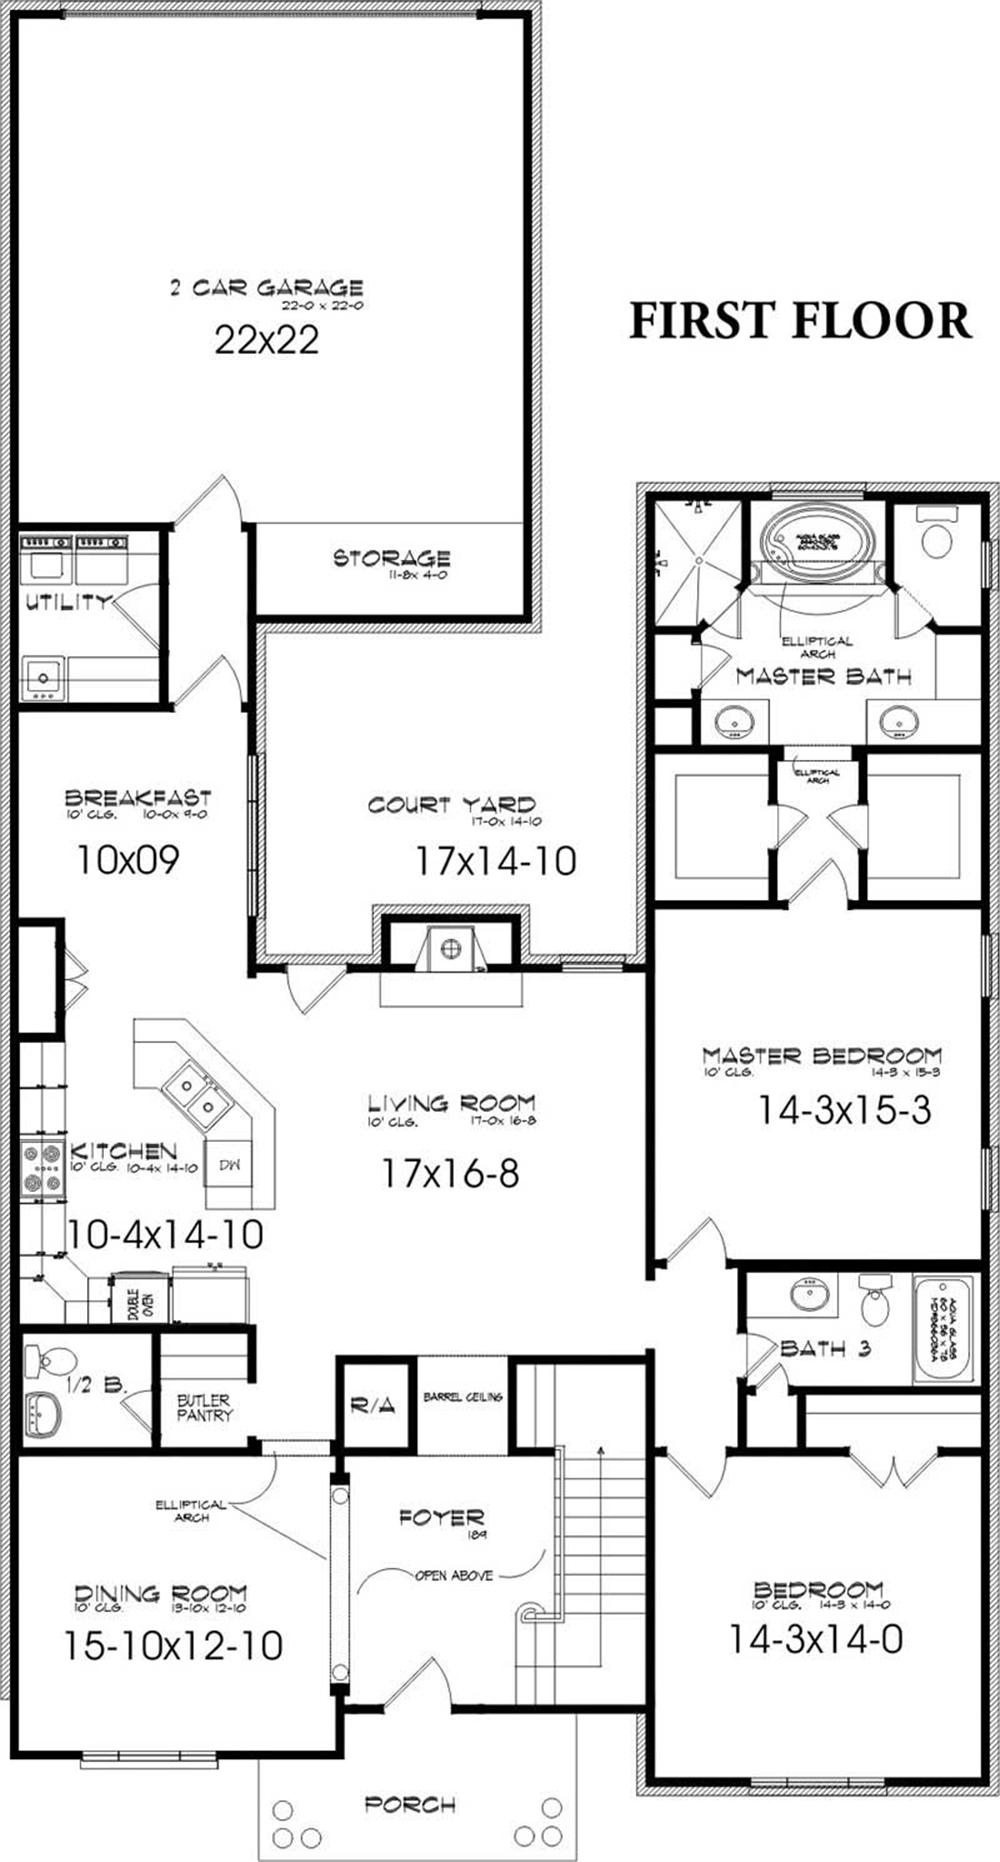 First floor house plans Houseplans com